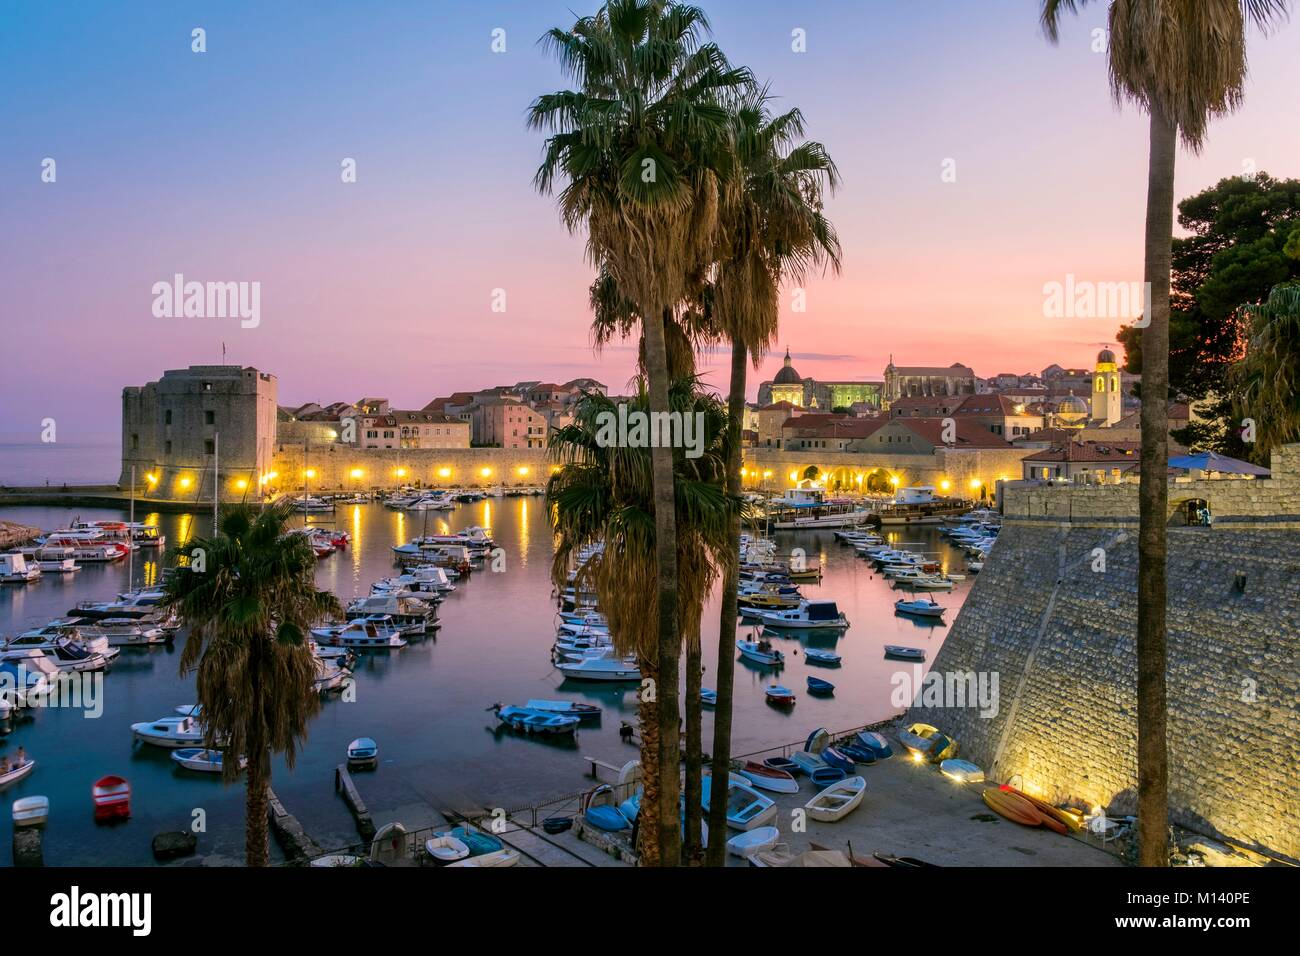 Croatia, Central Dalmatia, Dalmatian coast, Dubrovnik, Historic Centre listed as World Heritage by UNESCO, Old Port - Stock Image